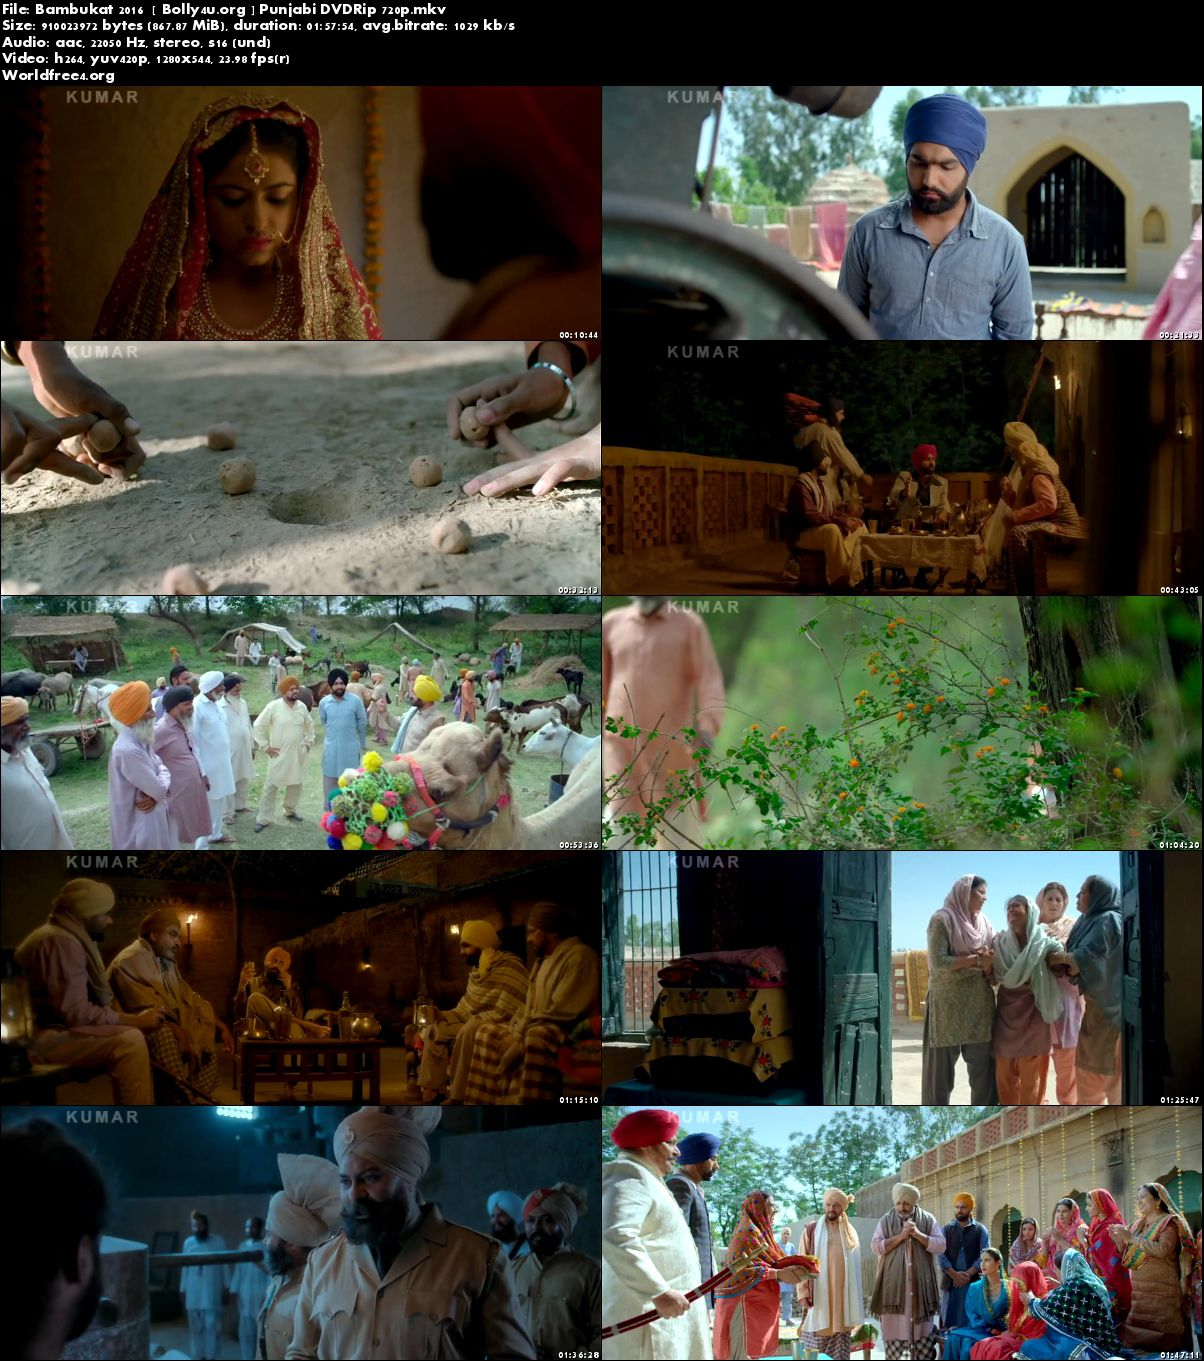 Bambukat 2016 DVDRip 350Mb Punjabi 480p Download